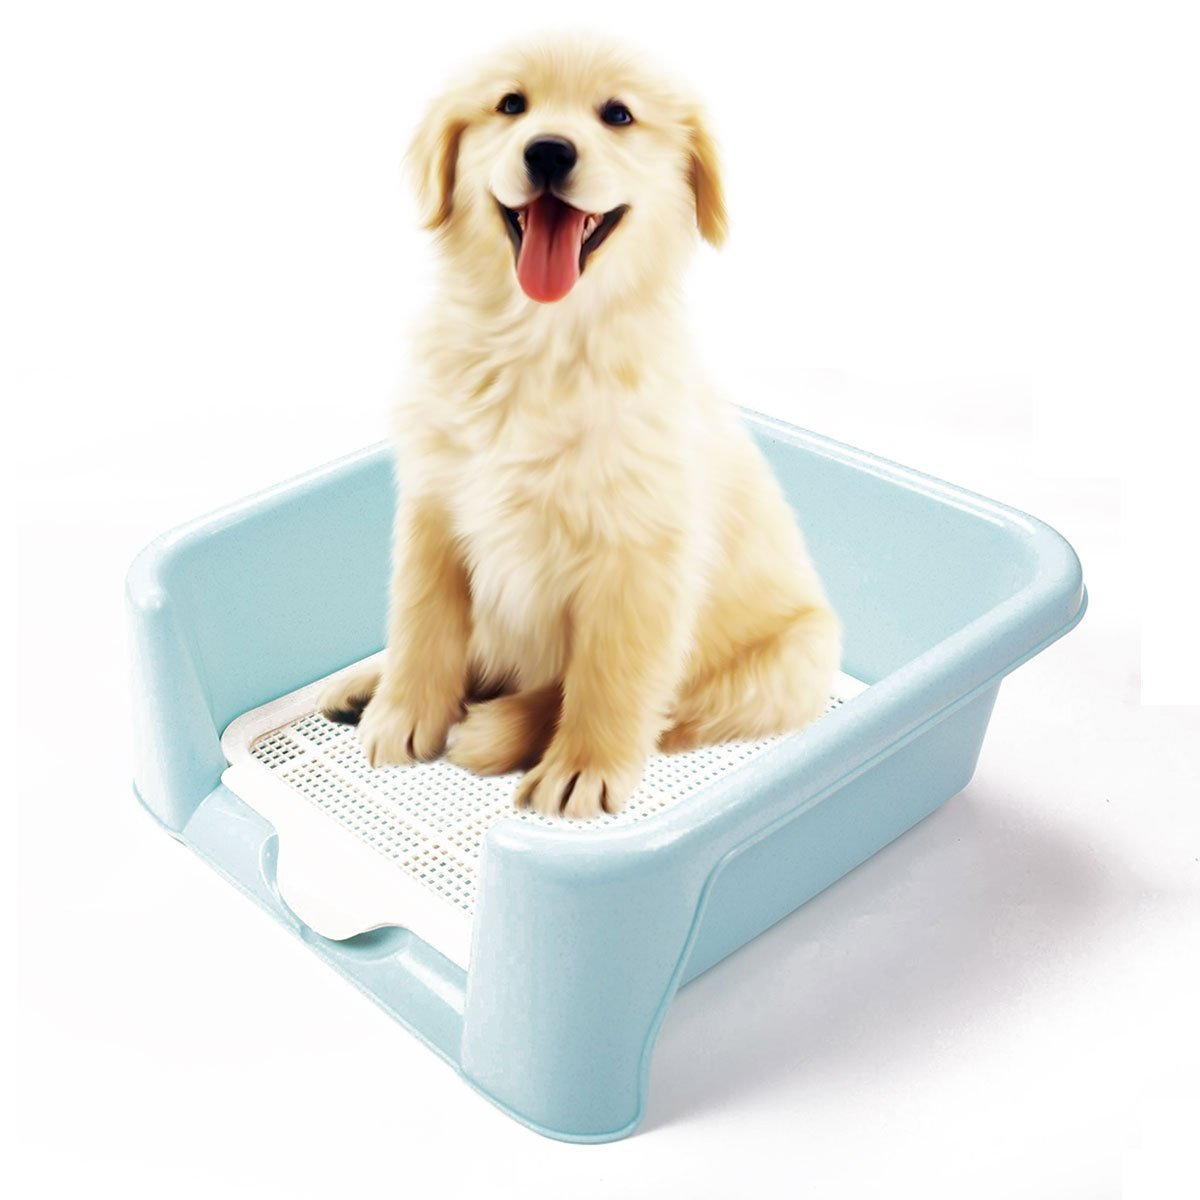 Litter Box For Female Dogs Puppy Toilet Trainer Urinal Fence Potty Patch Bedpan House Litter (Blue)